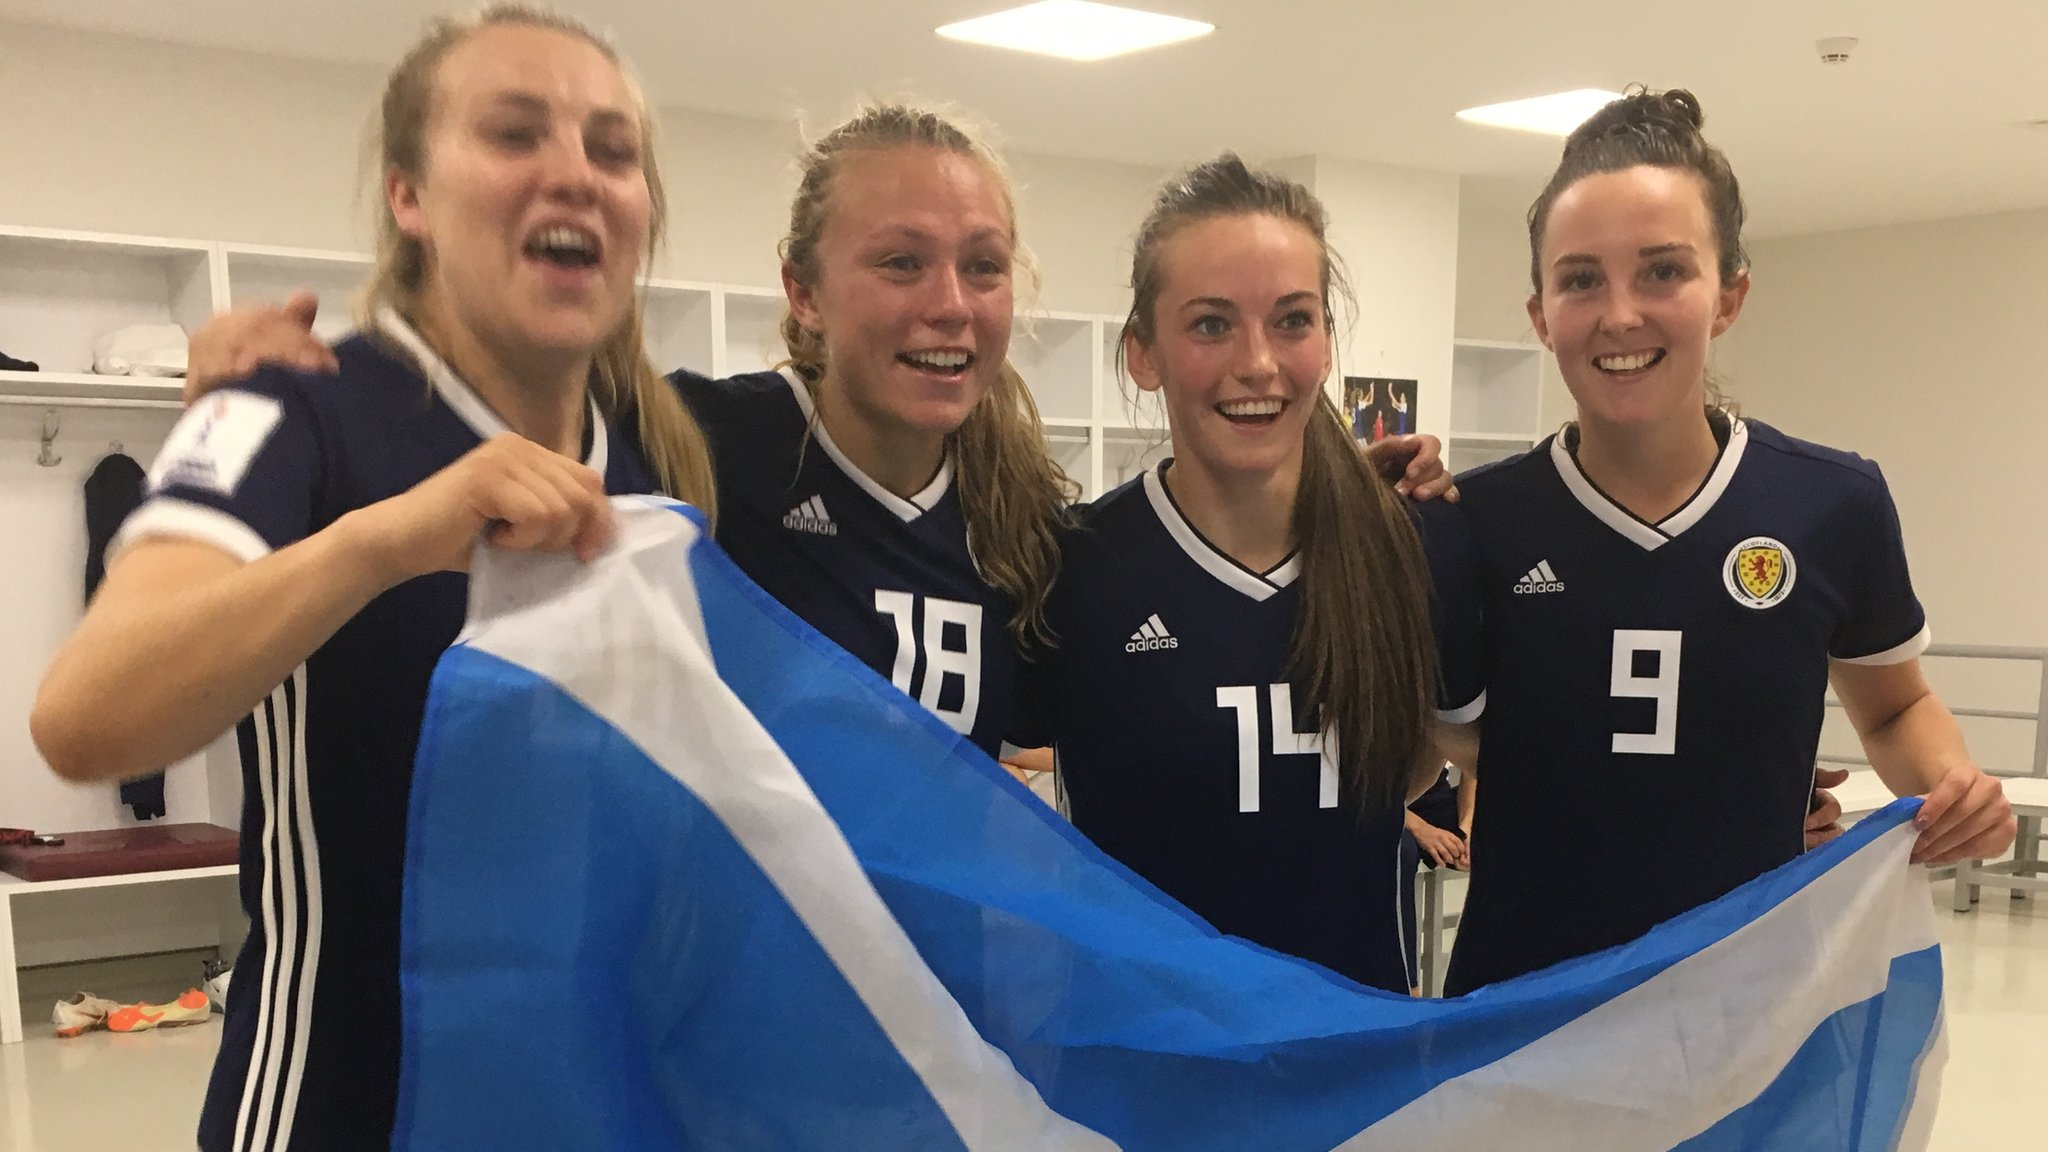 Scotland Women: All players to be full-time up to World Cup with Government funding